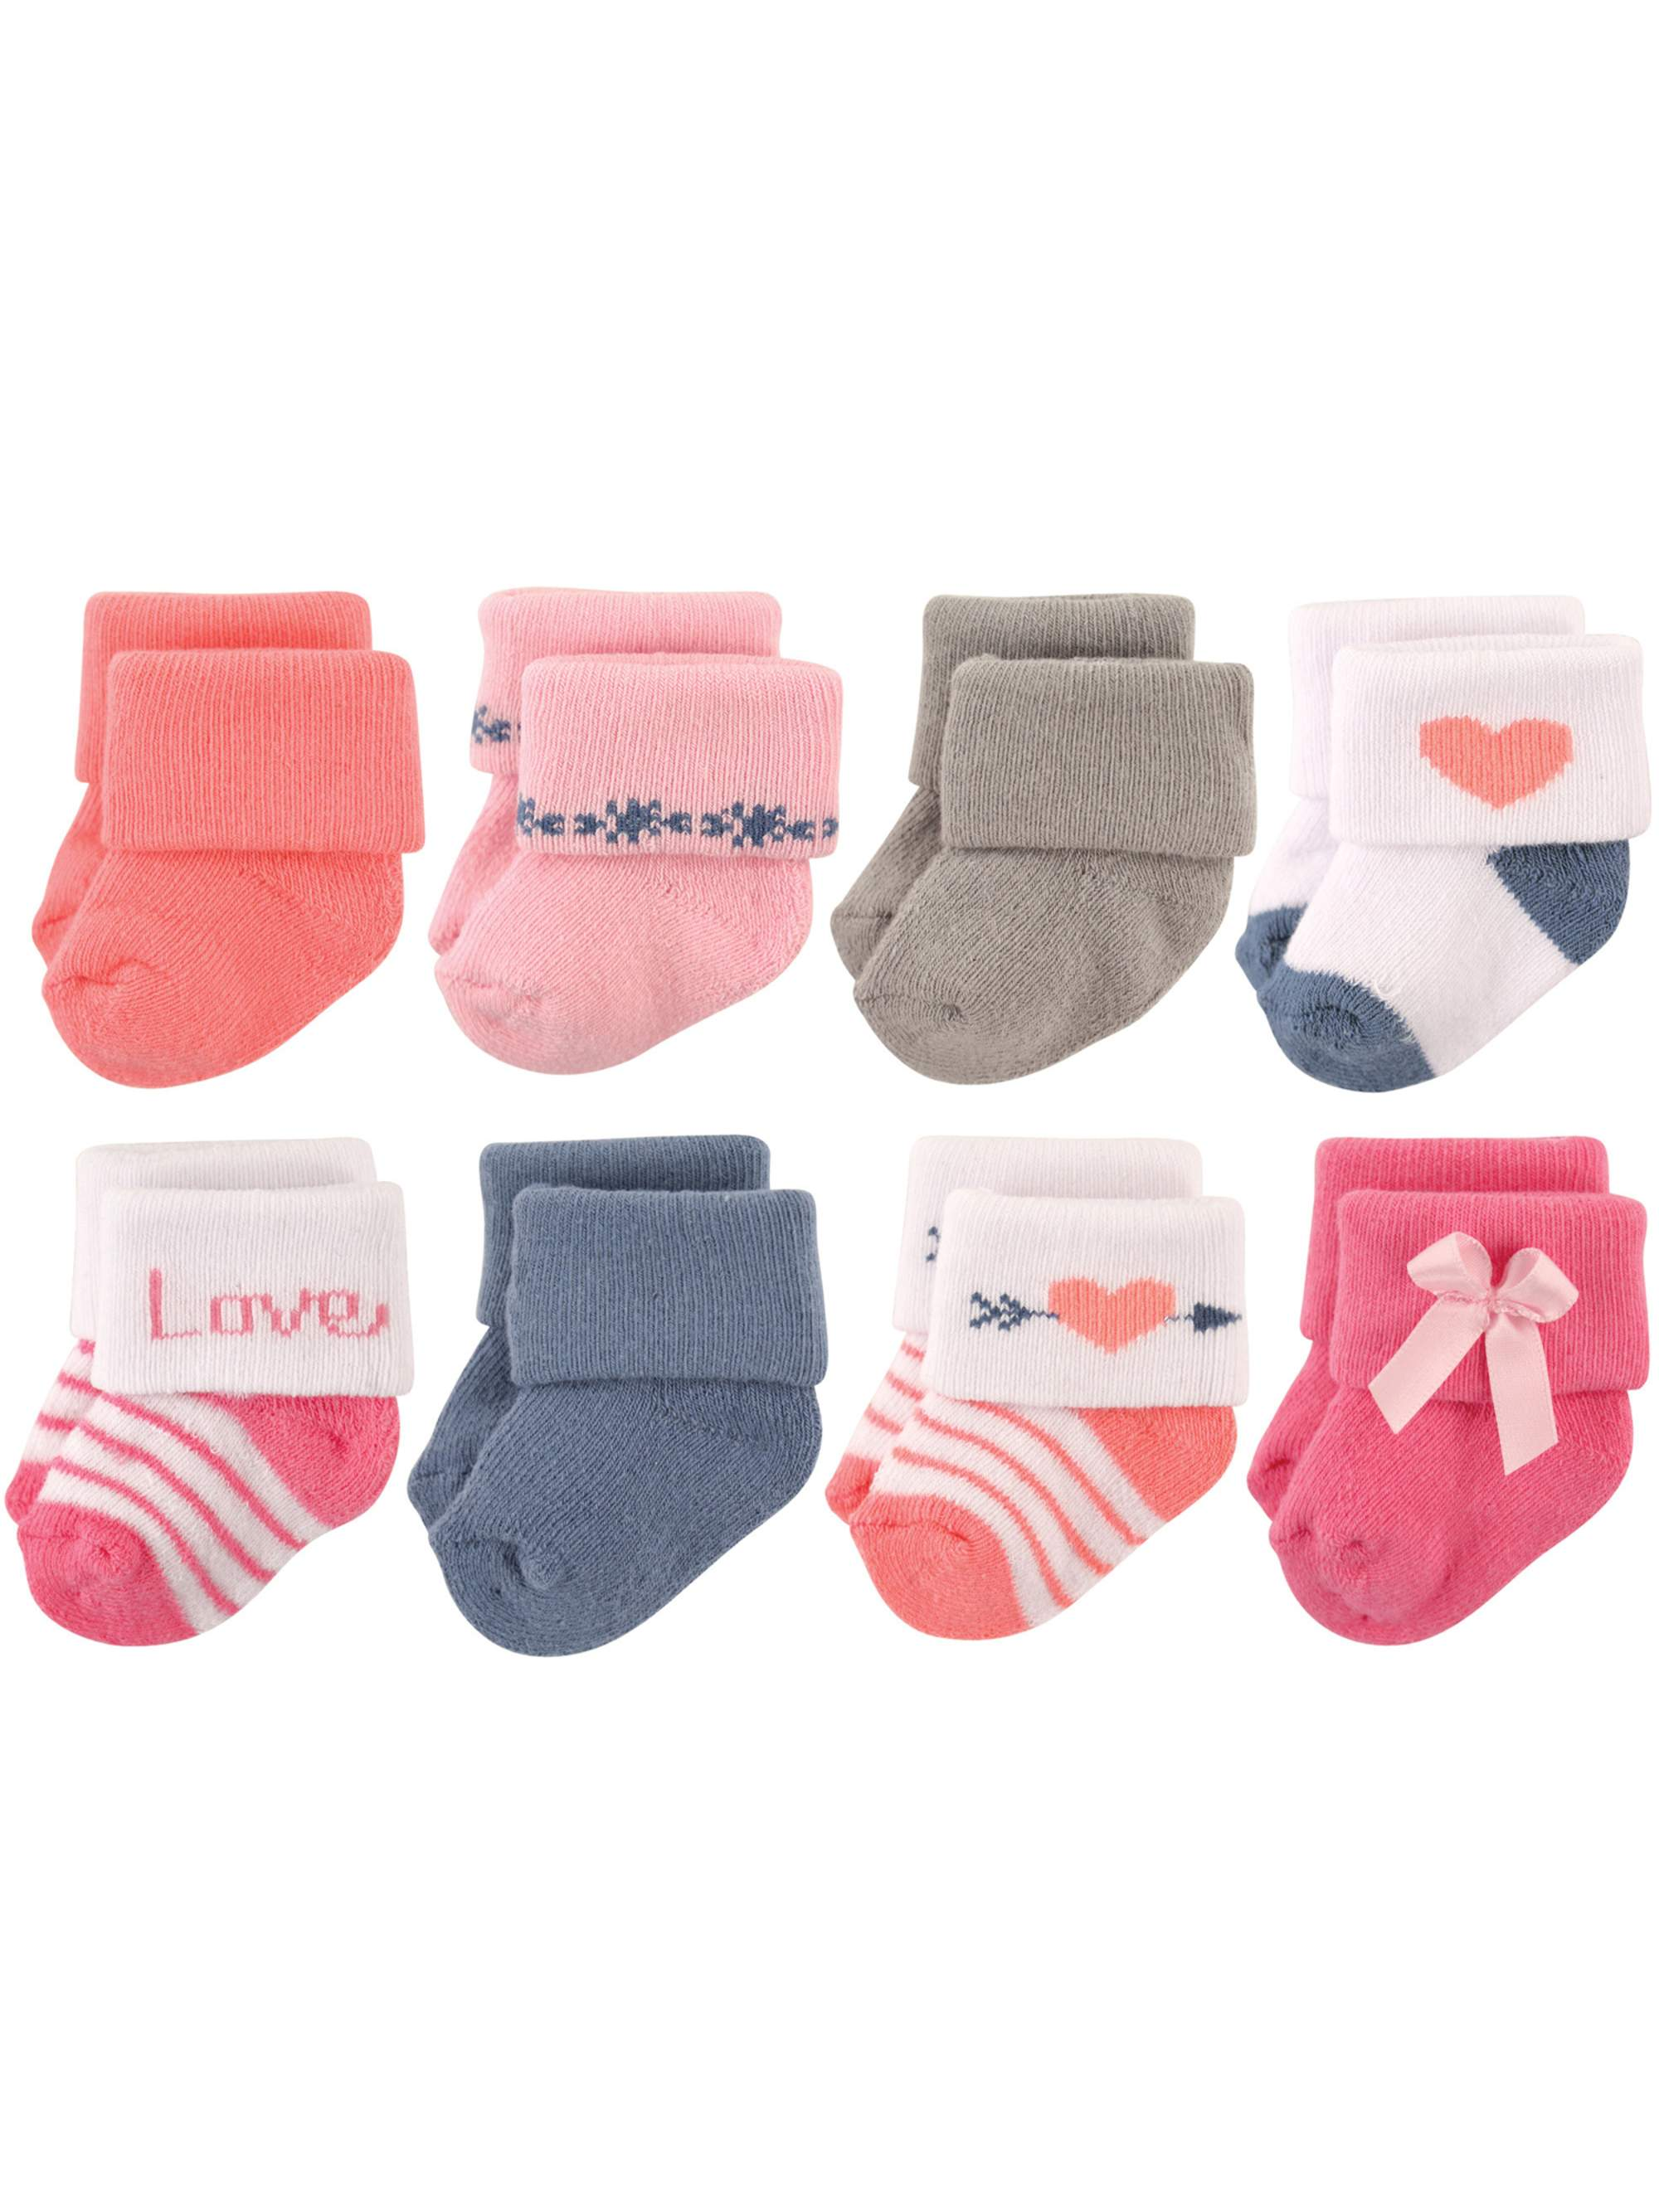 Terry Cloth Roll Cuff Crew Socks, 8-Pack (Baby Girls)